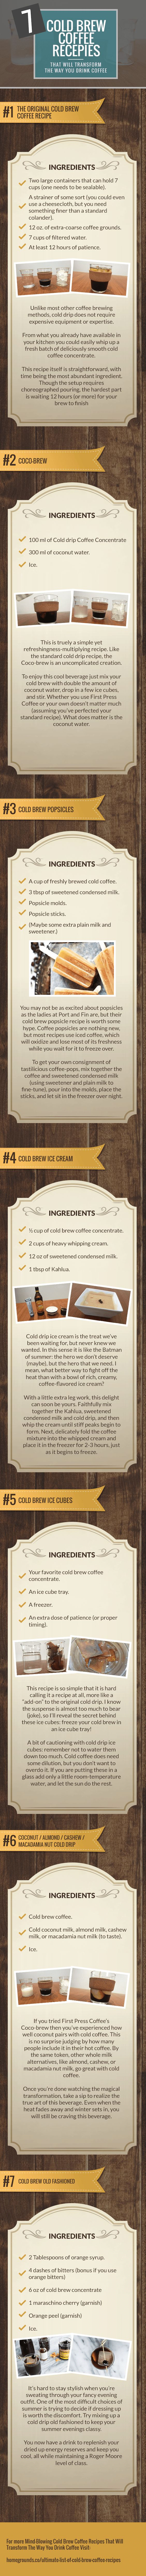 Summer is here, cold brew is in. Here are 21 cold brew recipe's to wet your pants over.